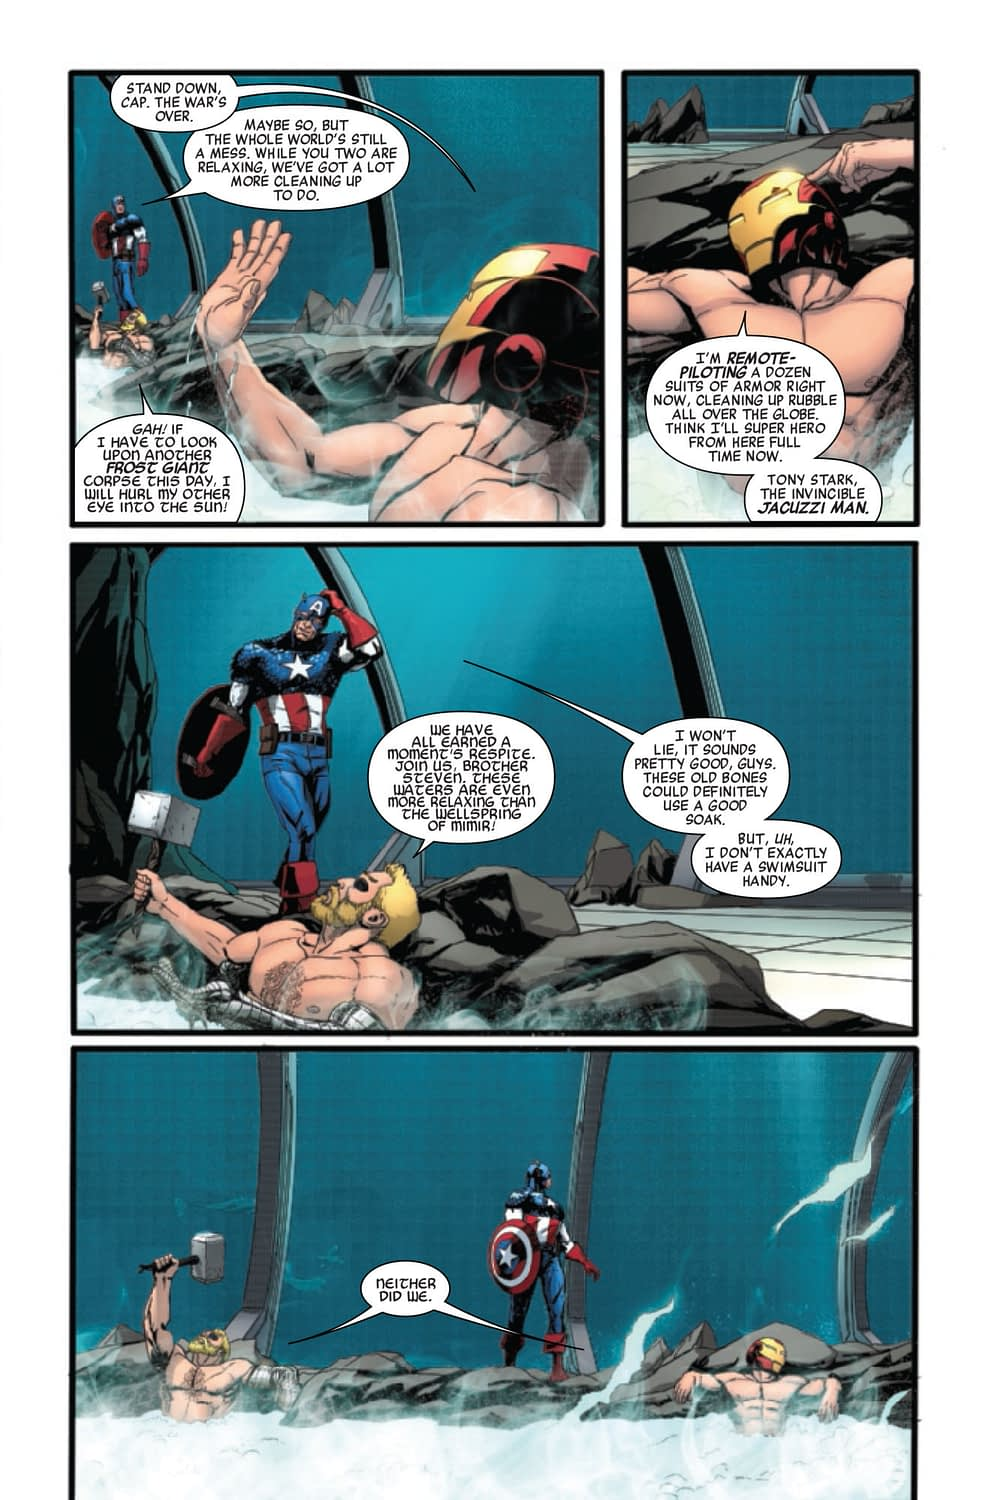 Avengers #21: Thor Plays With His Hammer in the Hot Tub While Iron Man Watches [Preview]